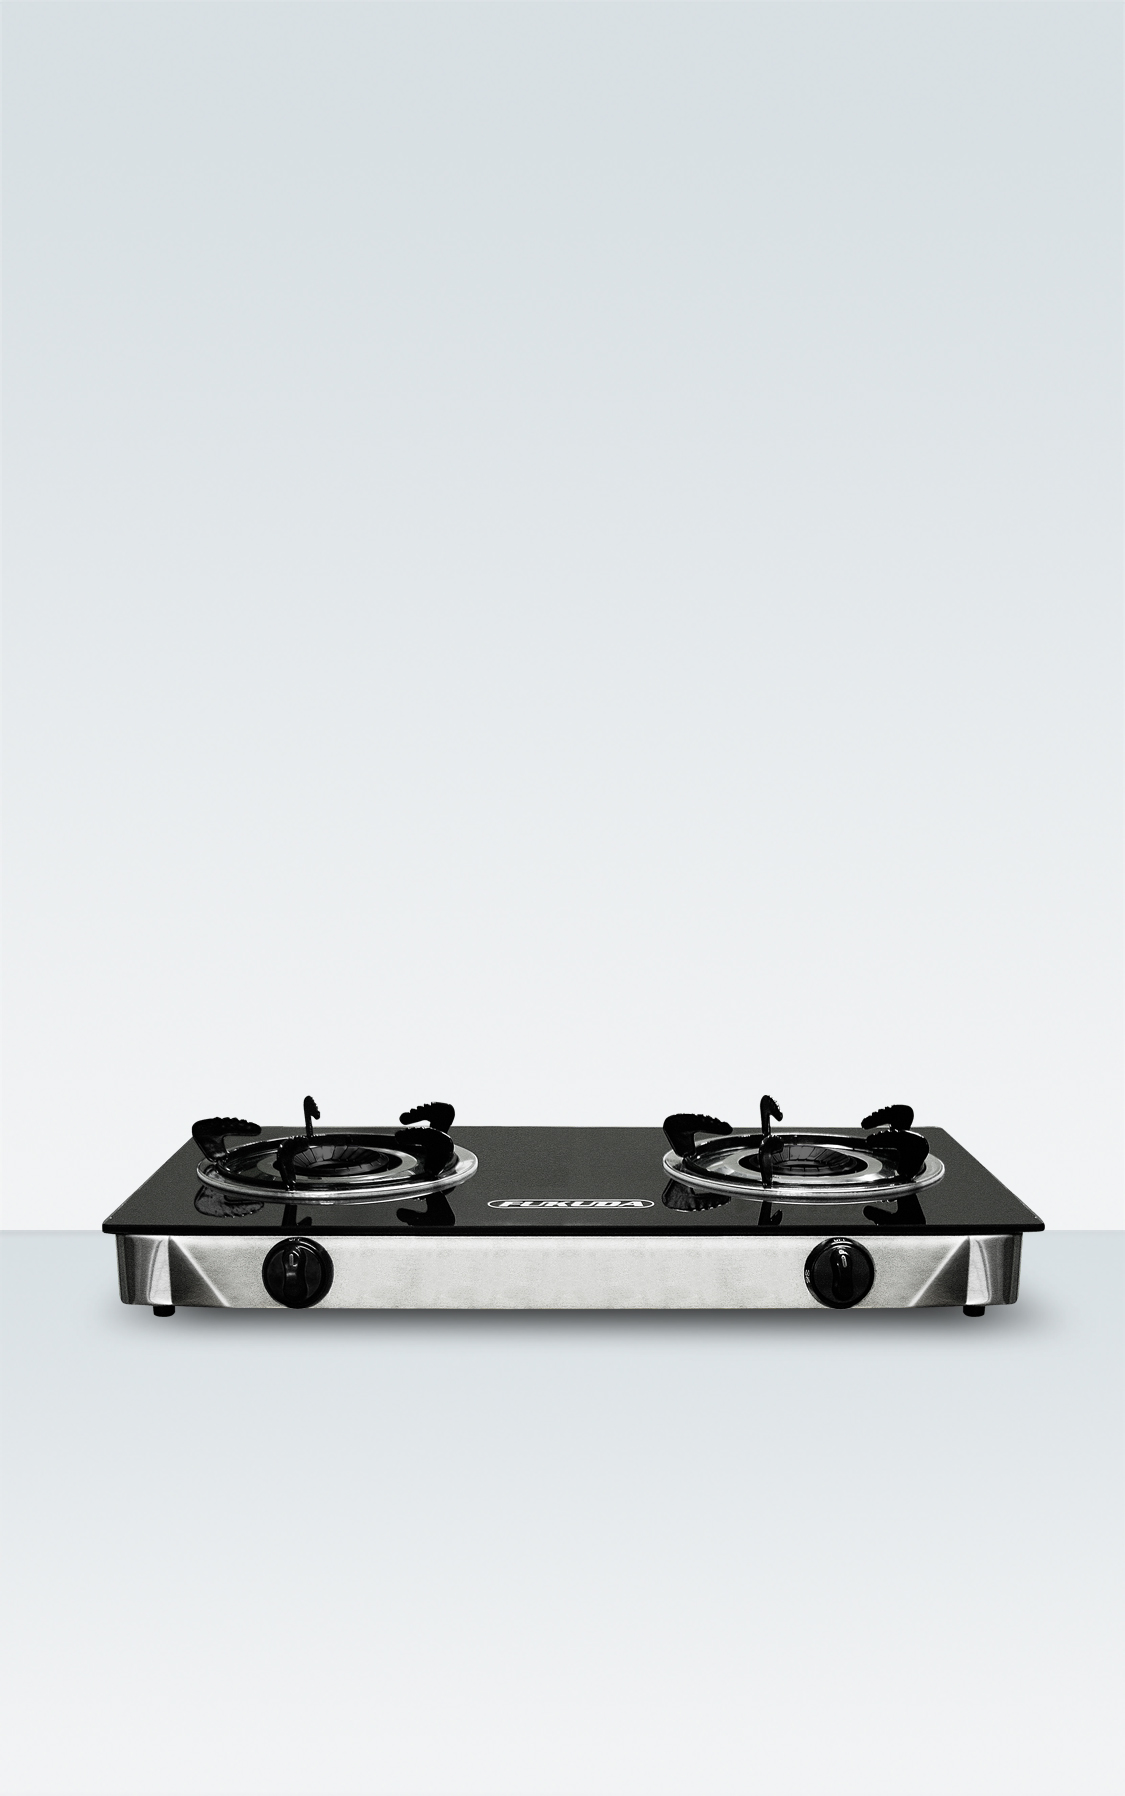 HEAT RESISTANT TEMPERED GLASS TOP DONULE BURNER GAS STOVE